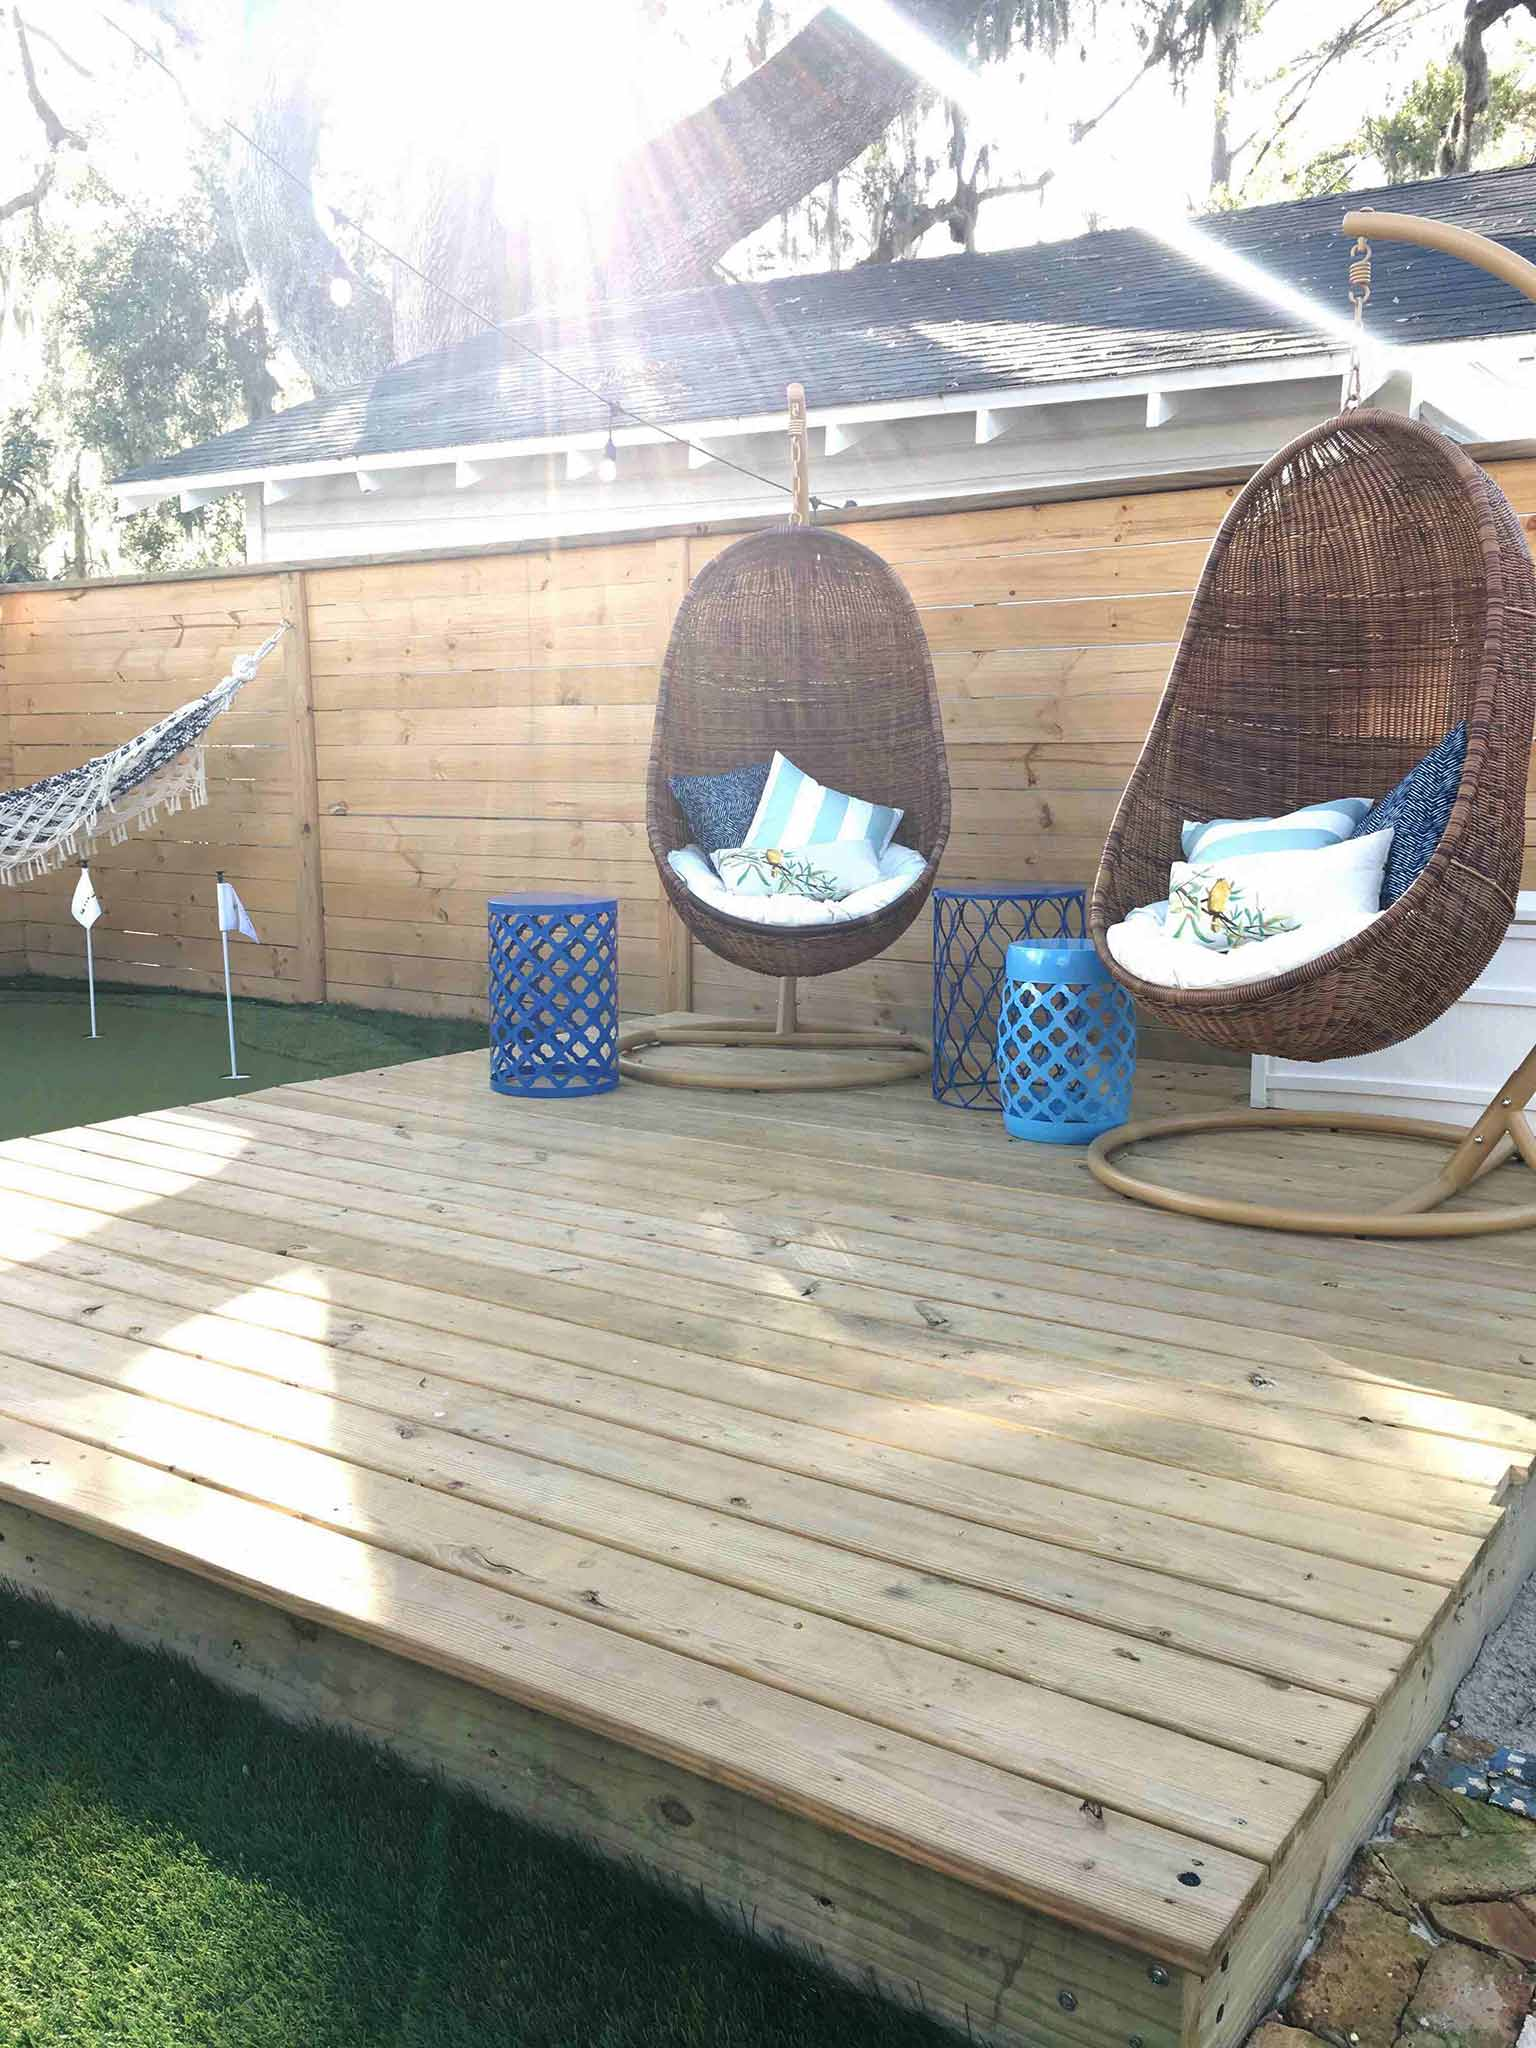 Seating area with hanging chairs - How we planned our backyard space - That Homebird Life Blog